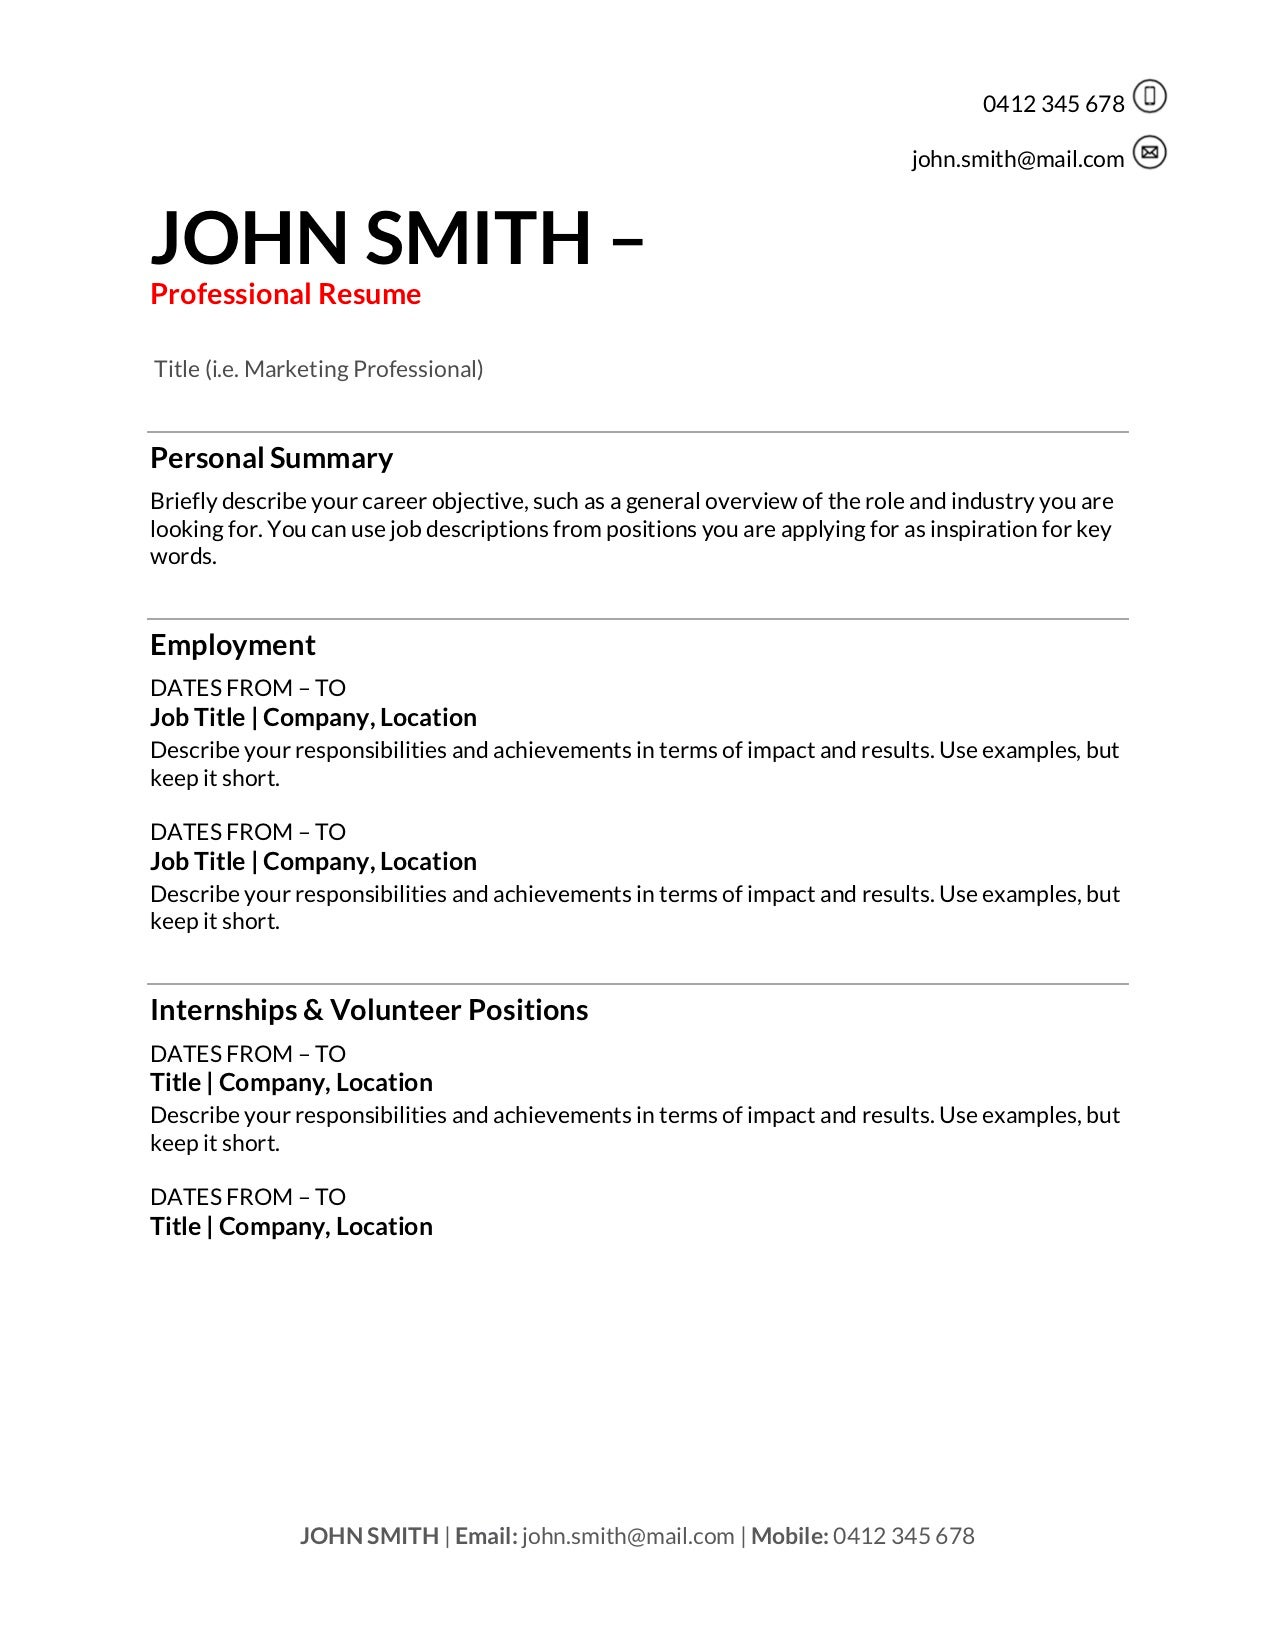 free resume templates to write in training au with one term job corporate recruiter Resume Resume With One Long Term Job